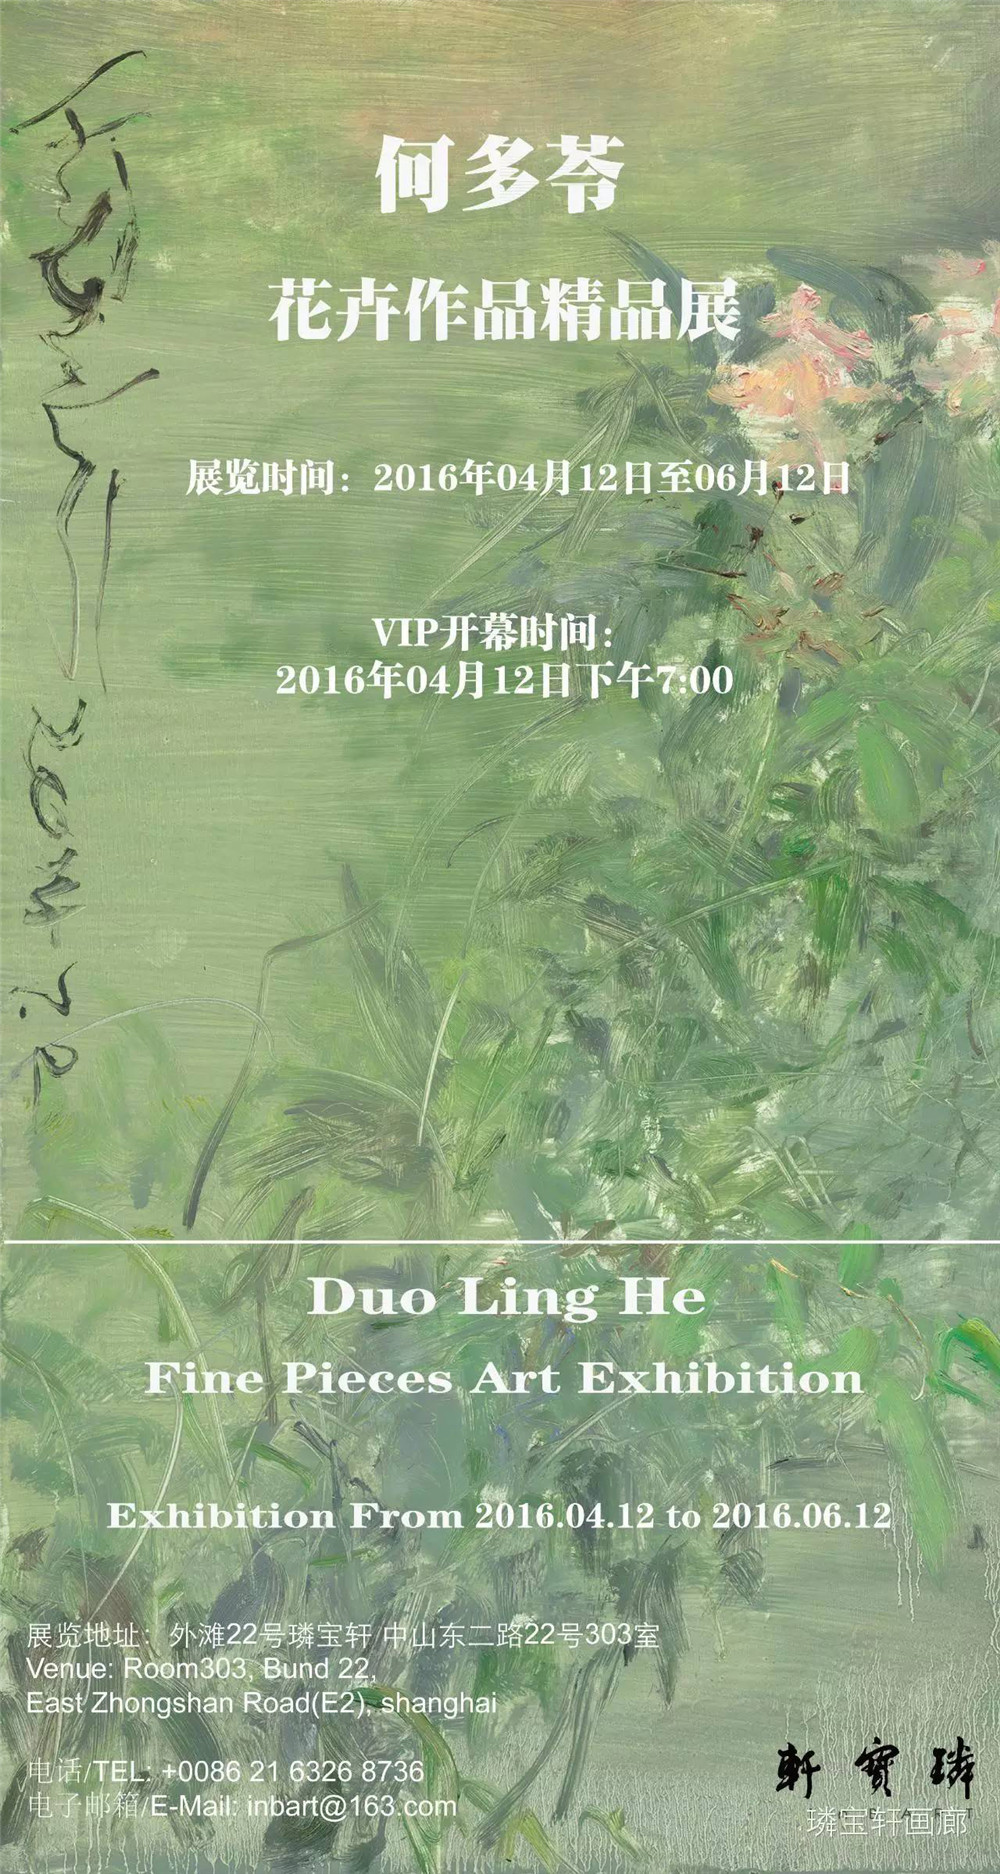 Duo Ling He Fine Pieces Art Exhibition